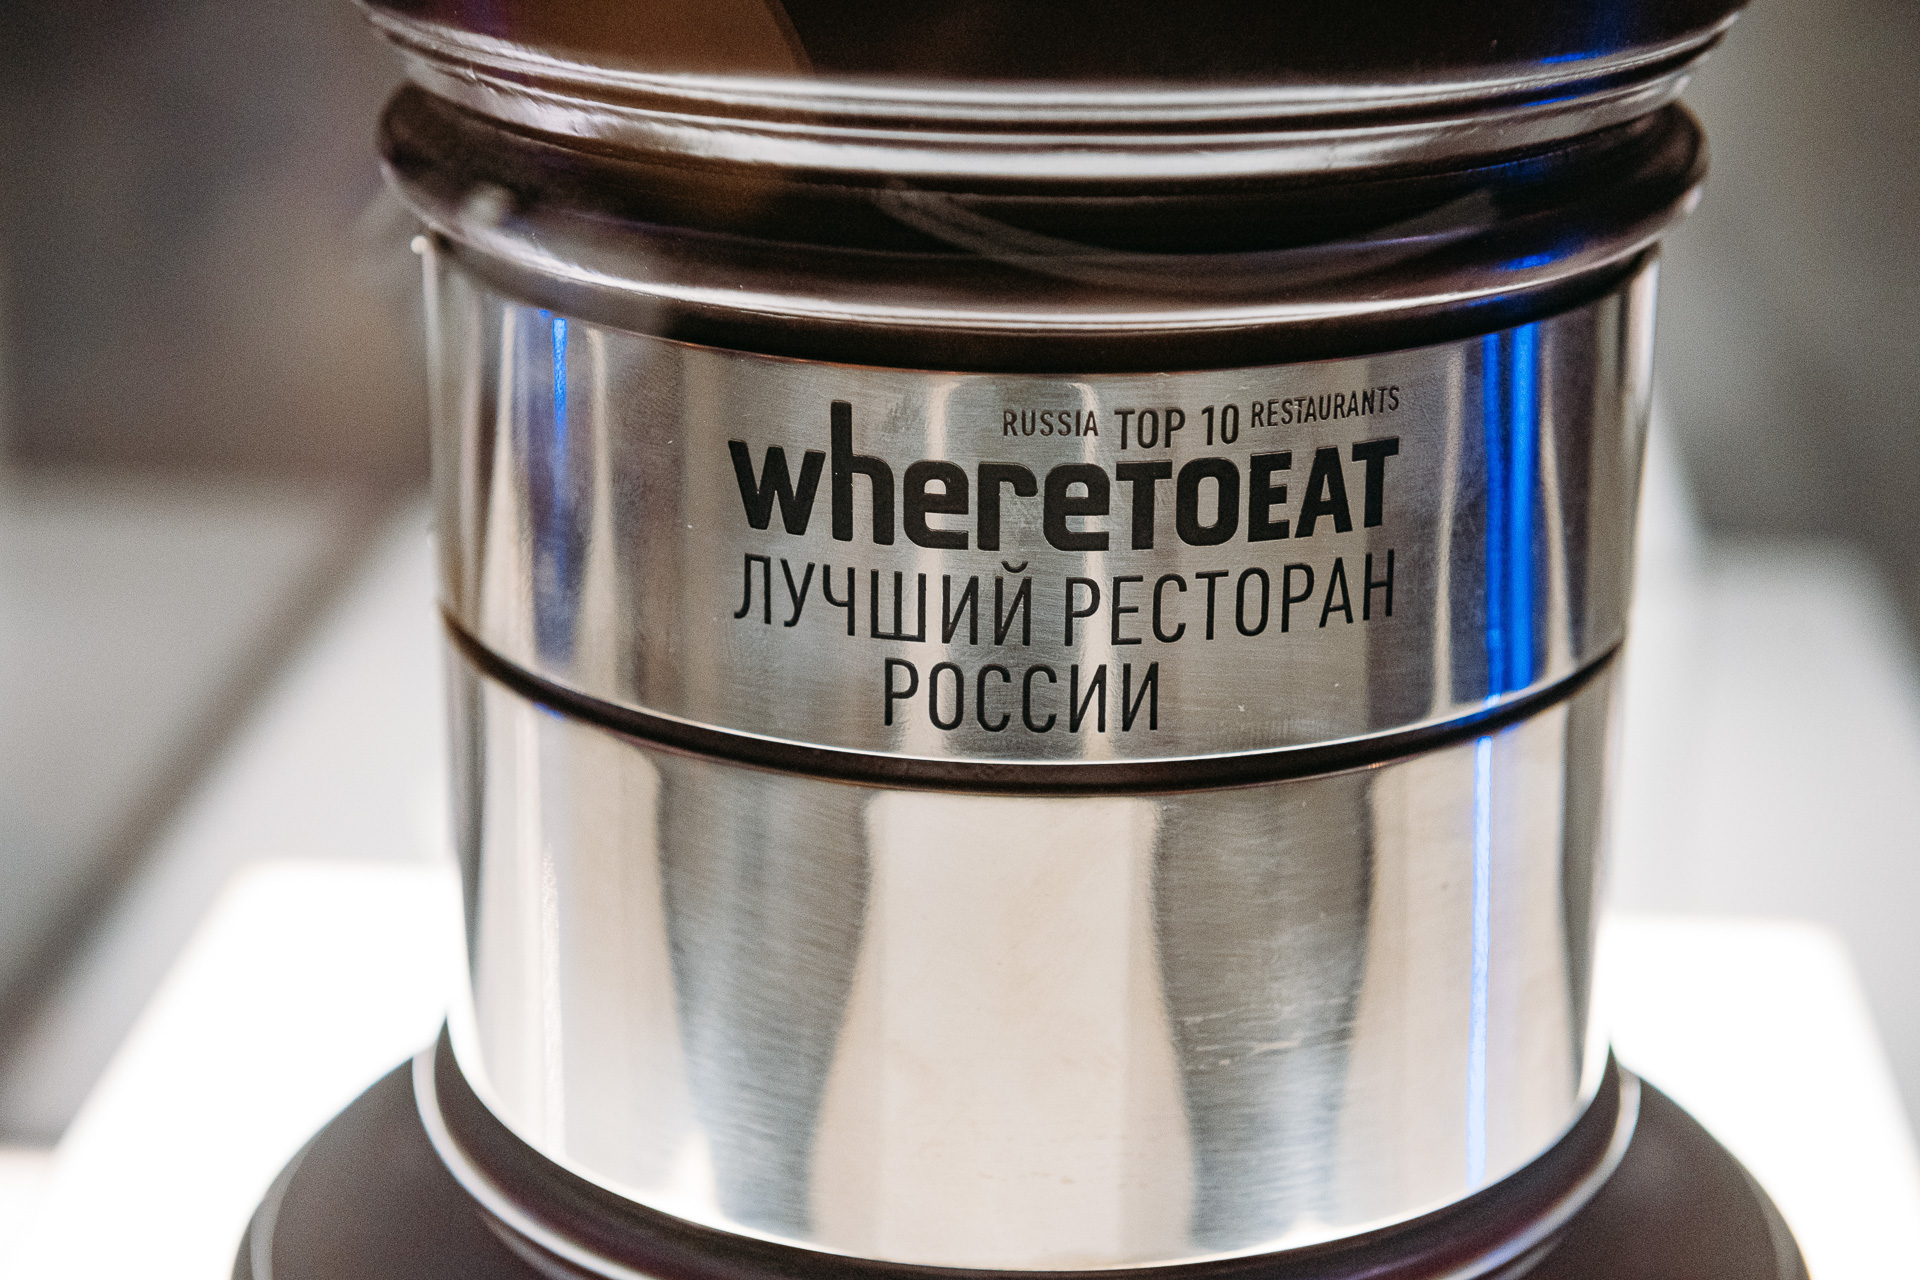 В Москве состоялась первая церемония награждения премии WHERETOEAT RUSSIA